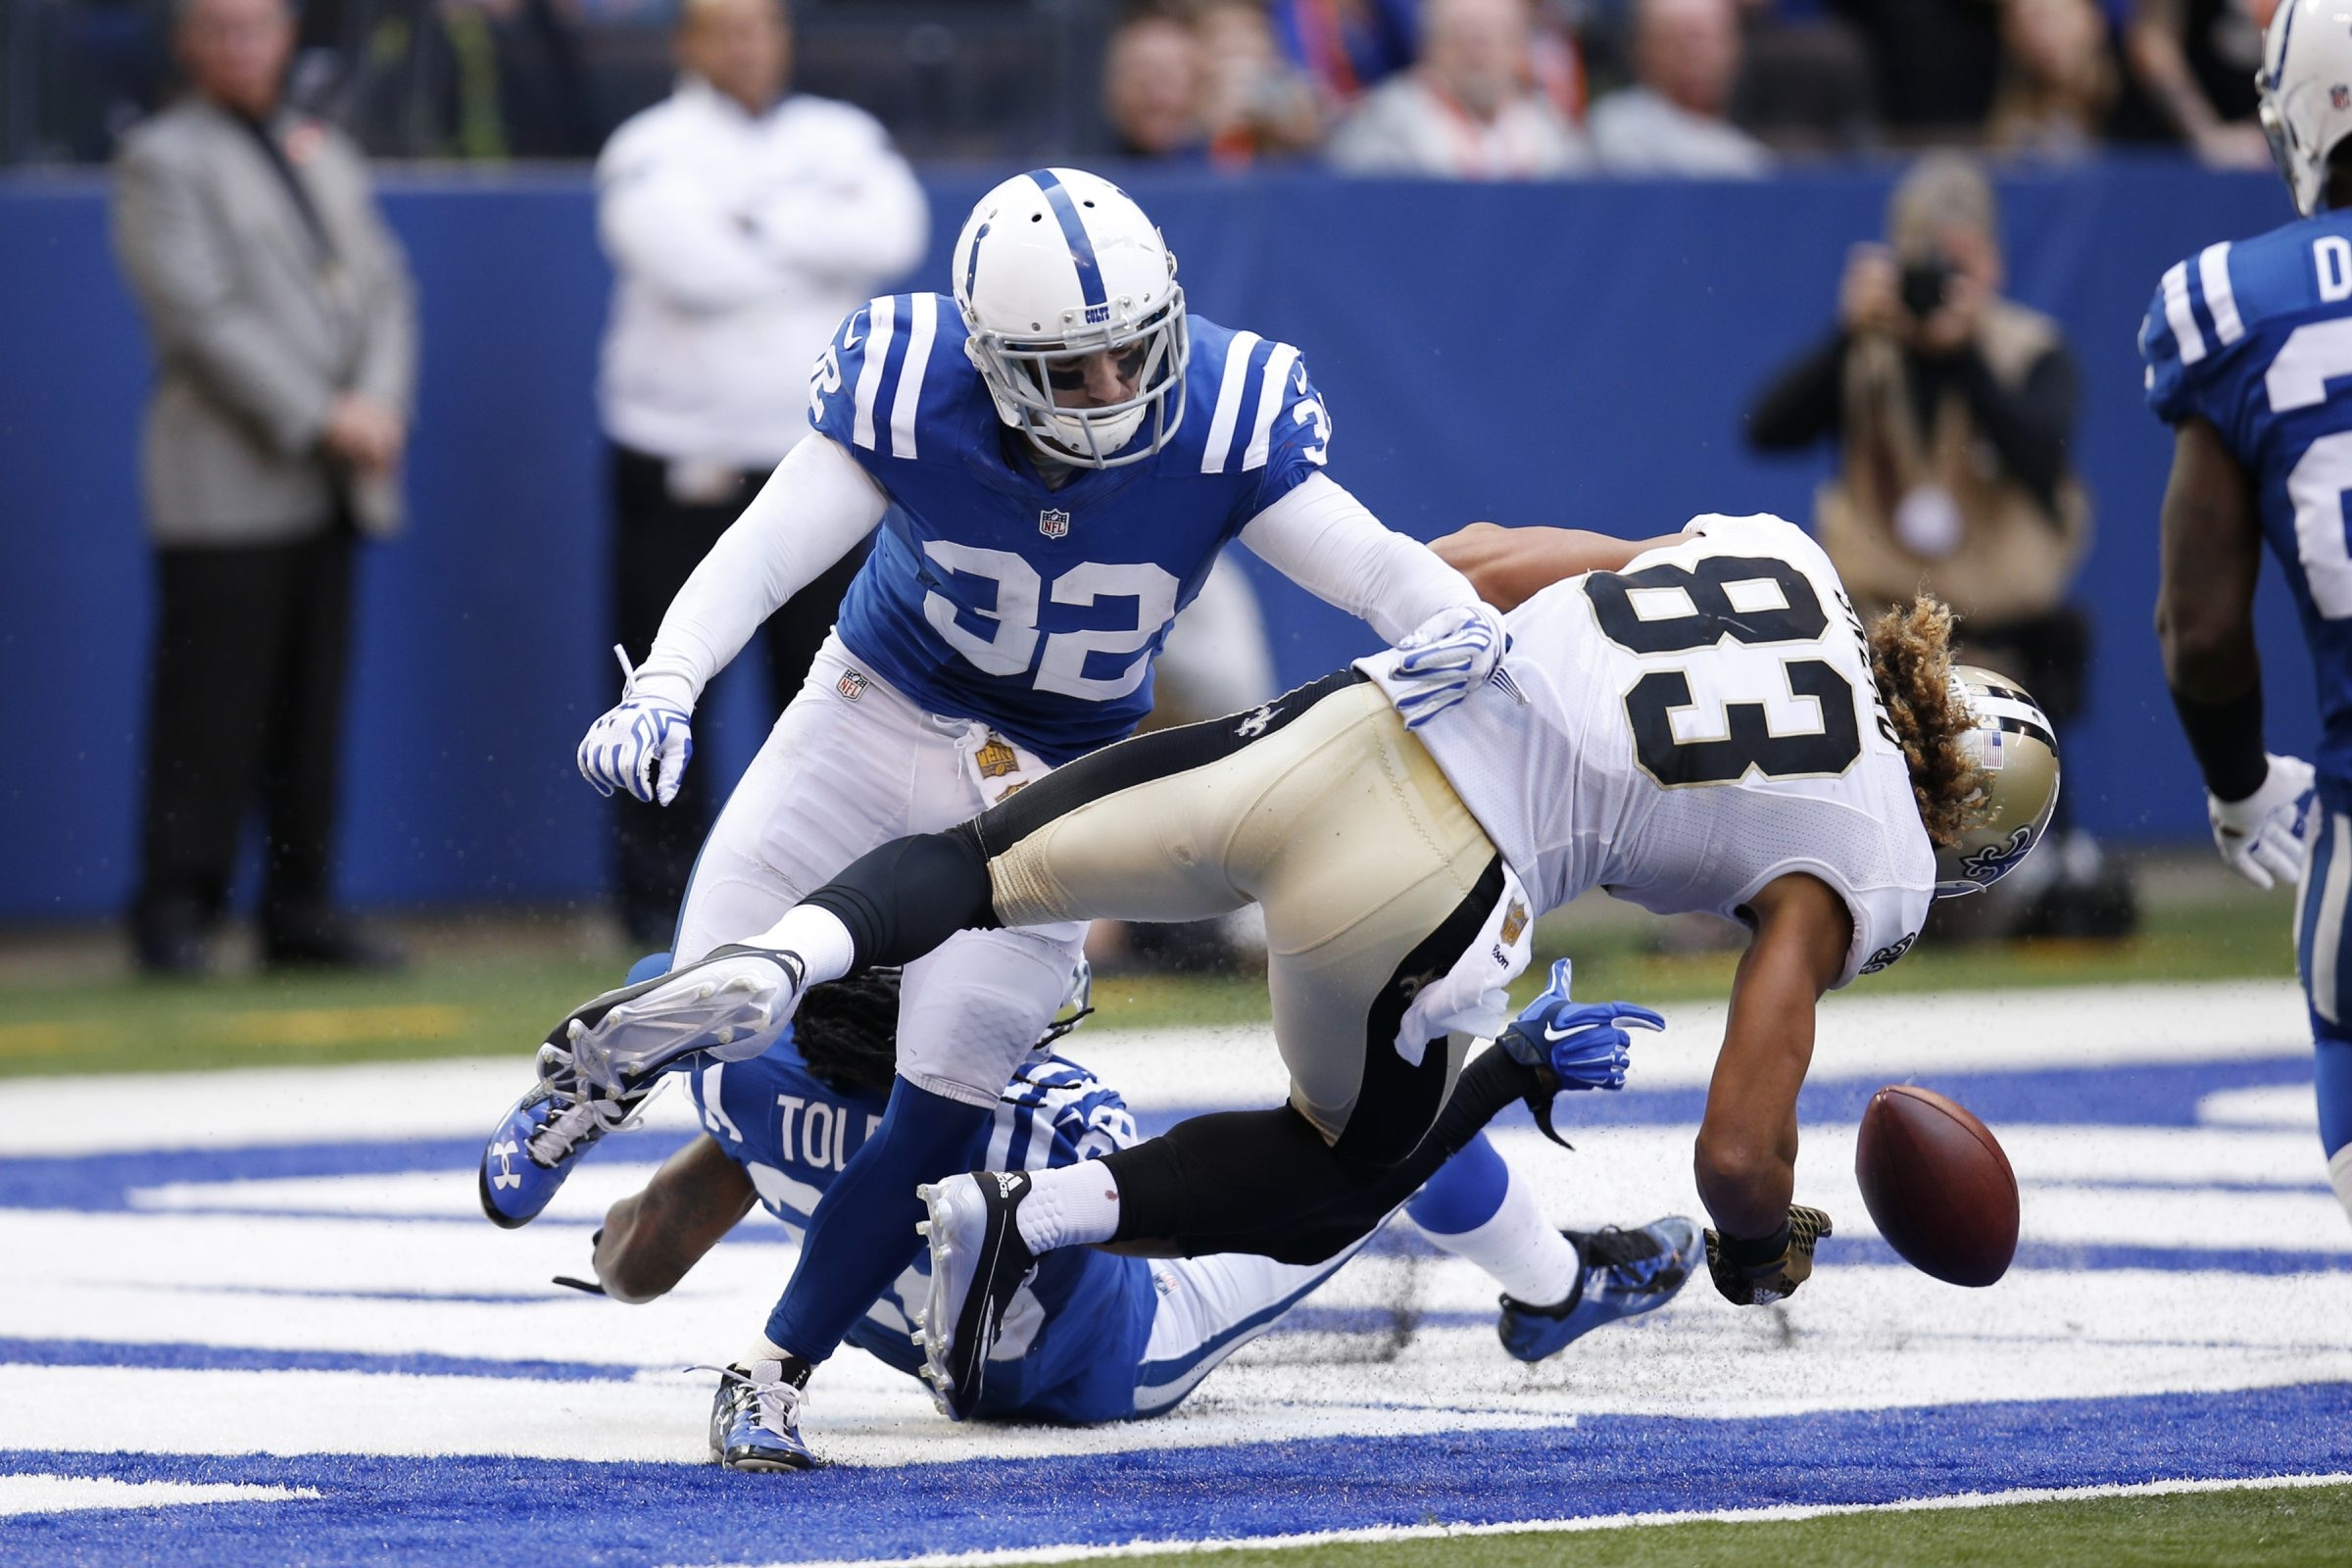 Colt Anderson (32) of the Indianapolis Colts defends a pass against Willie Snead (83) of the New Orleans Saints. Anderson joined the Bills in 2016.